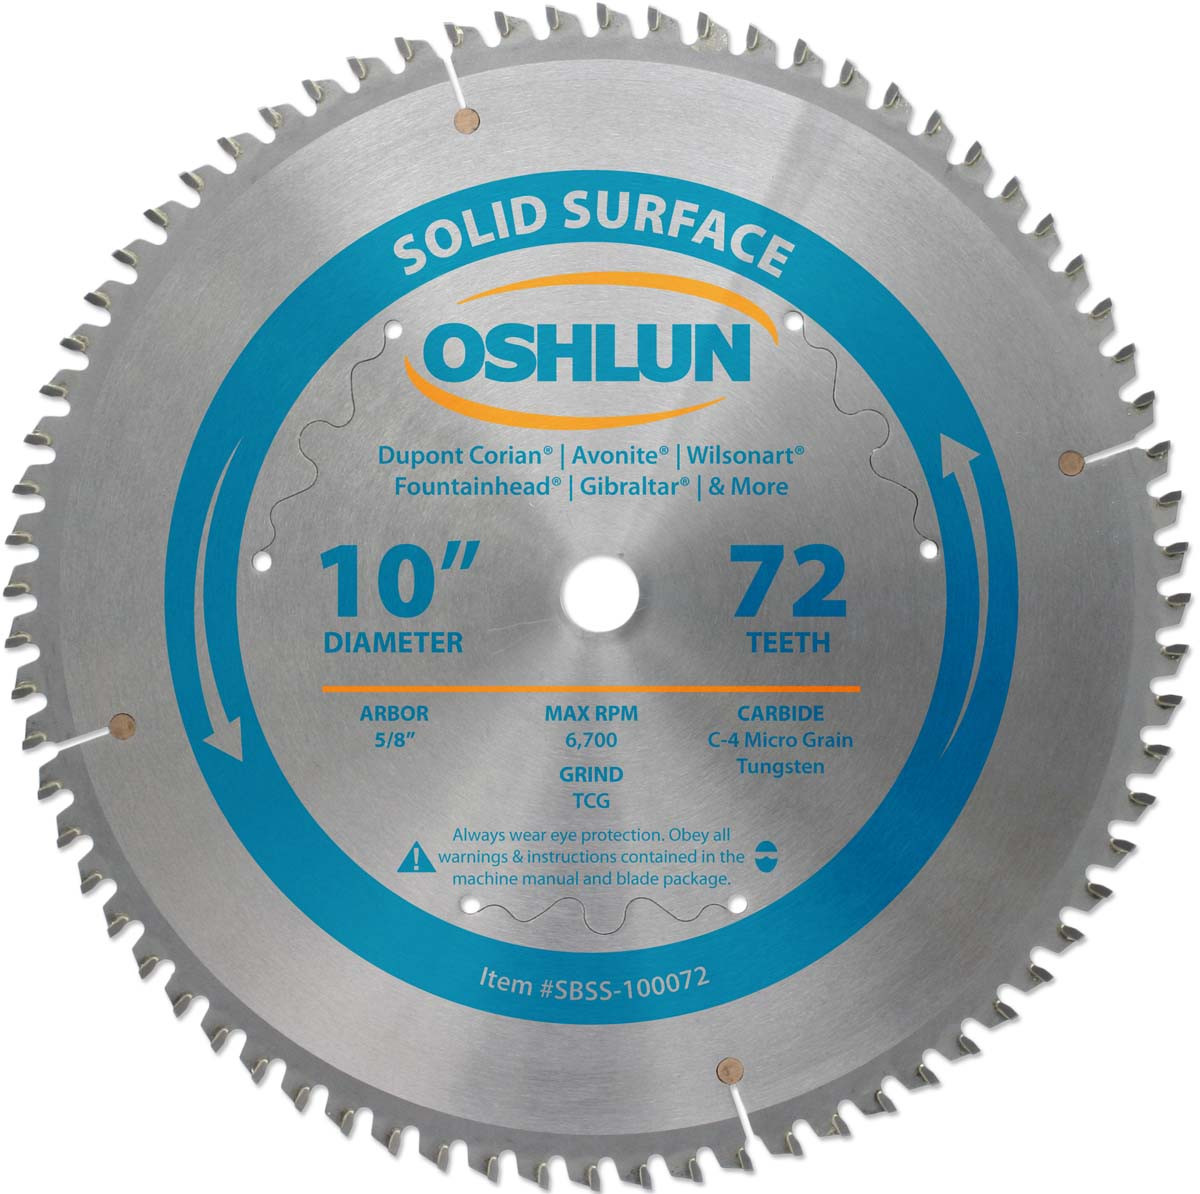 Solid Surface Plastic Cutting Saw Blades By Oshlun